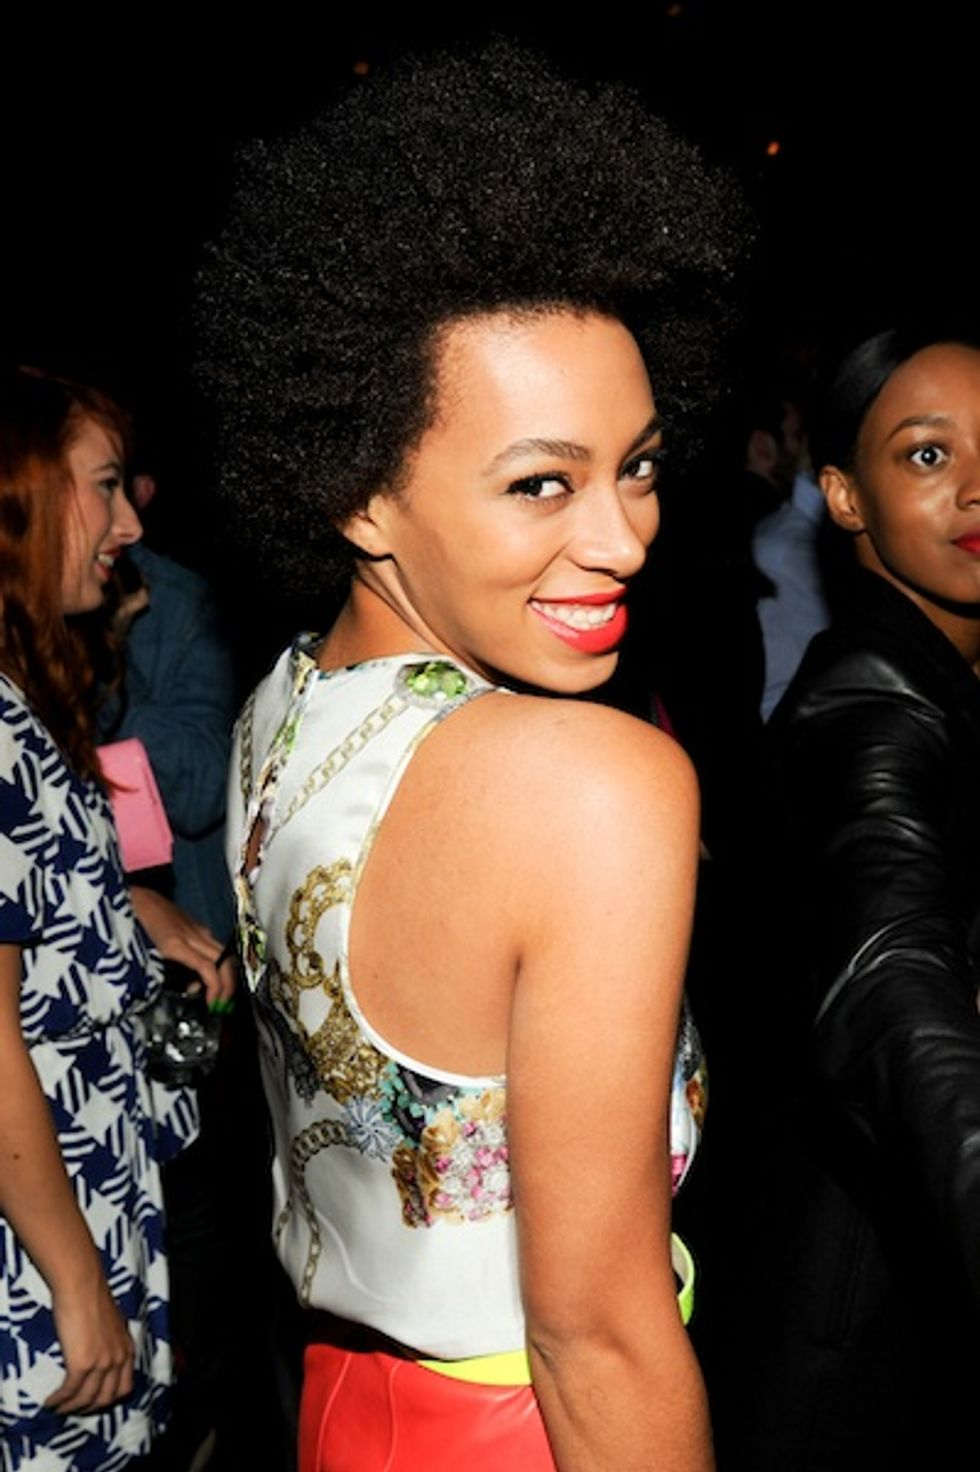 Solange Knowles Talks Blue Ivy, Her New Album at the Refinery 29 Party.